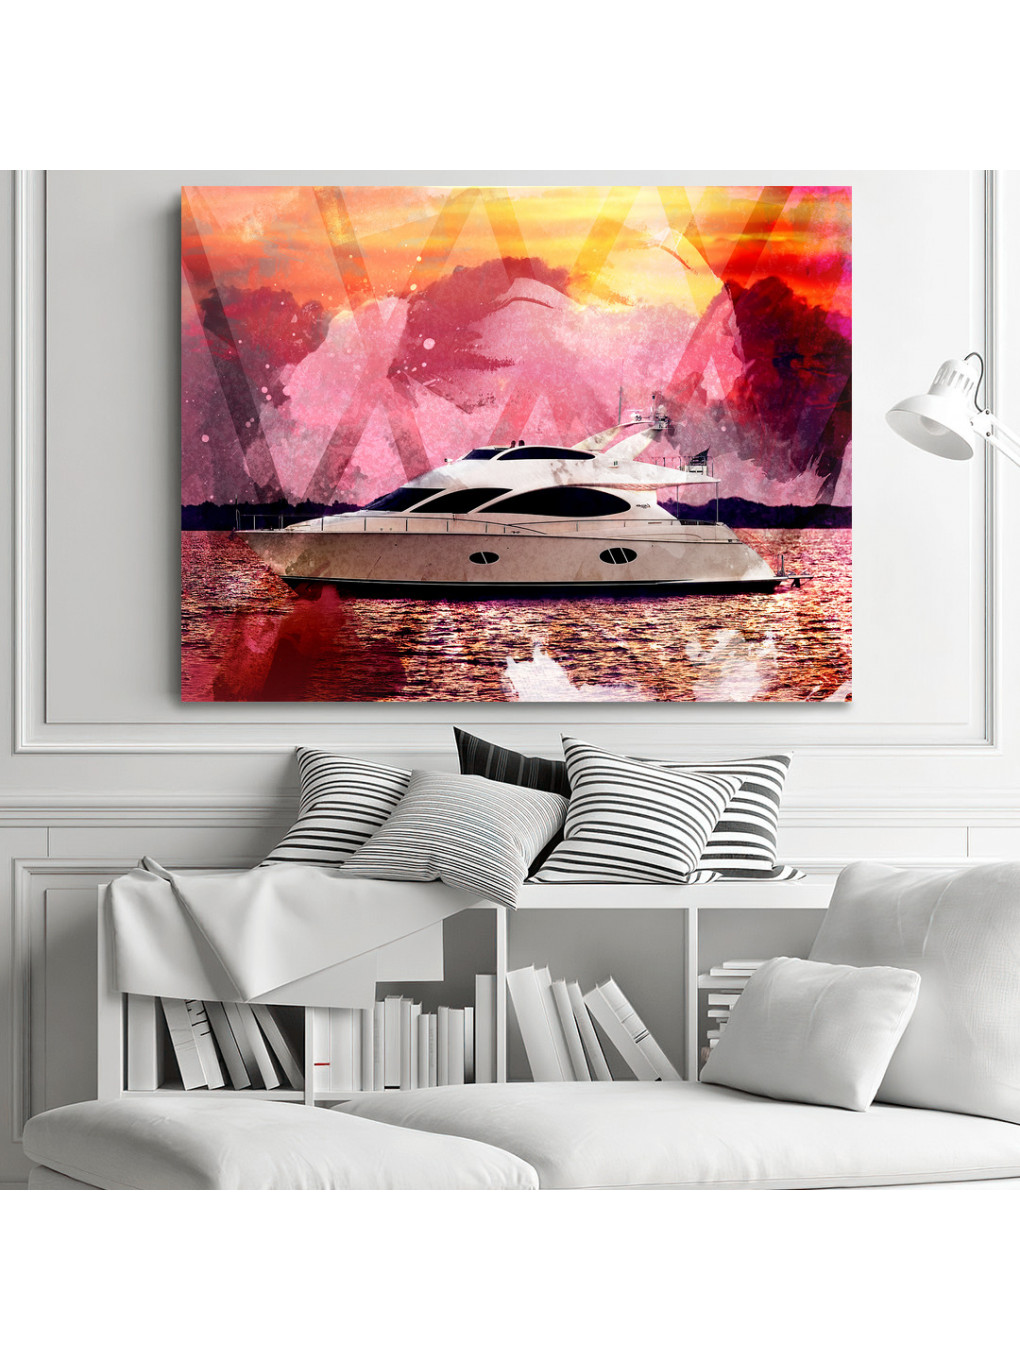 Yacht Dreams_CHTDRM345_1